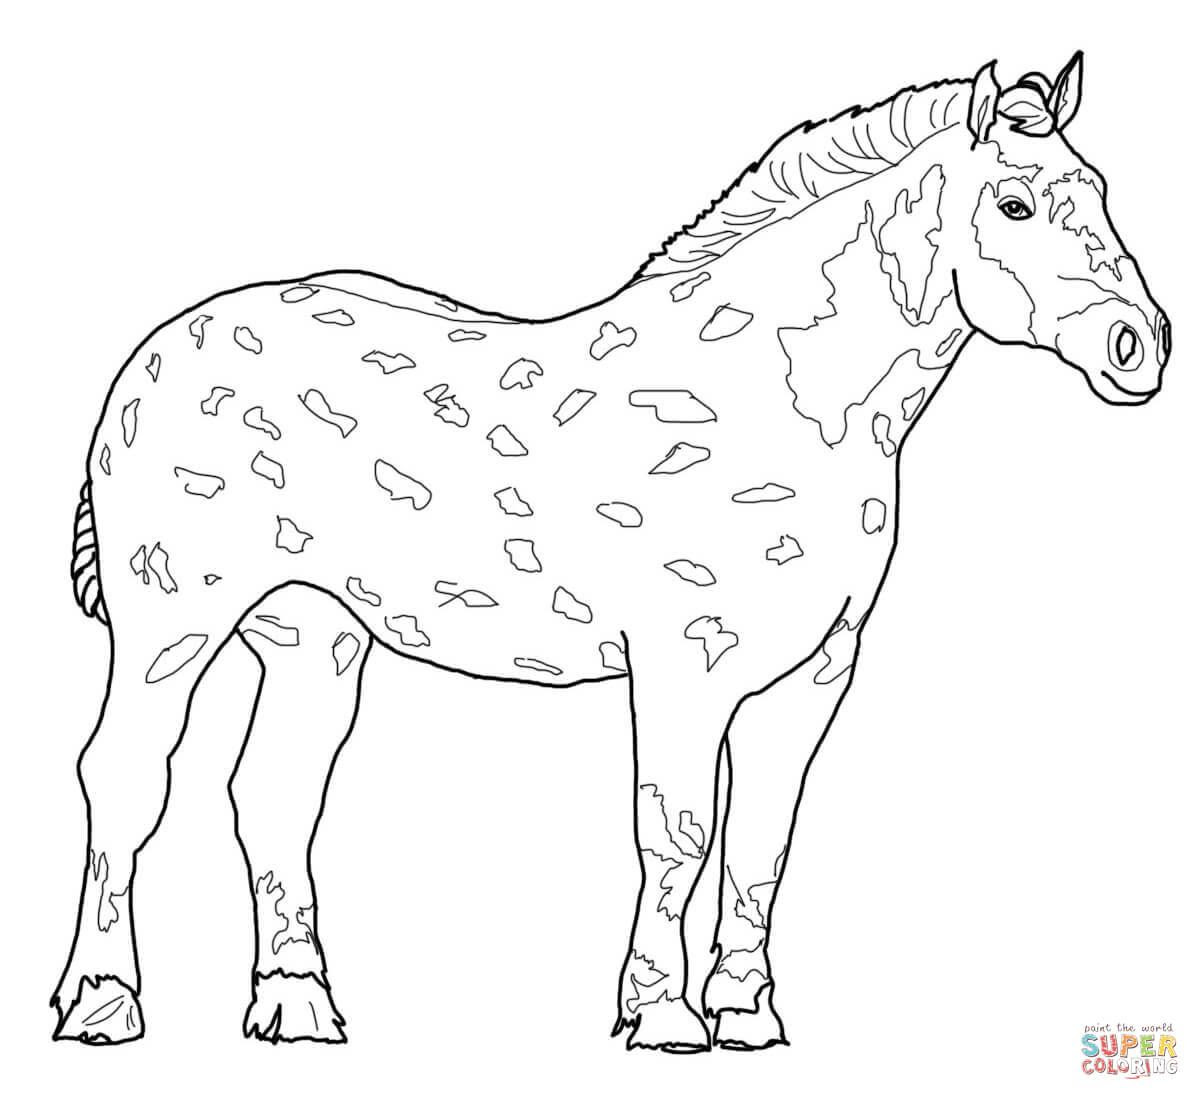 Miniature Horse Coloring Pages at GetColorings.com | Free ...